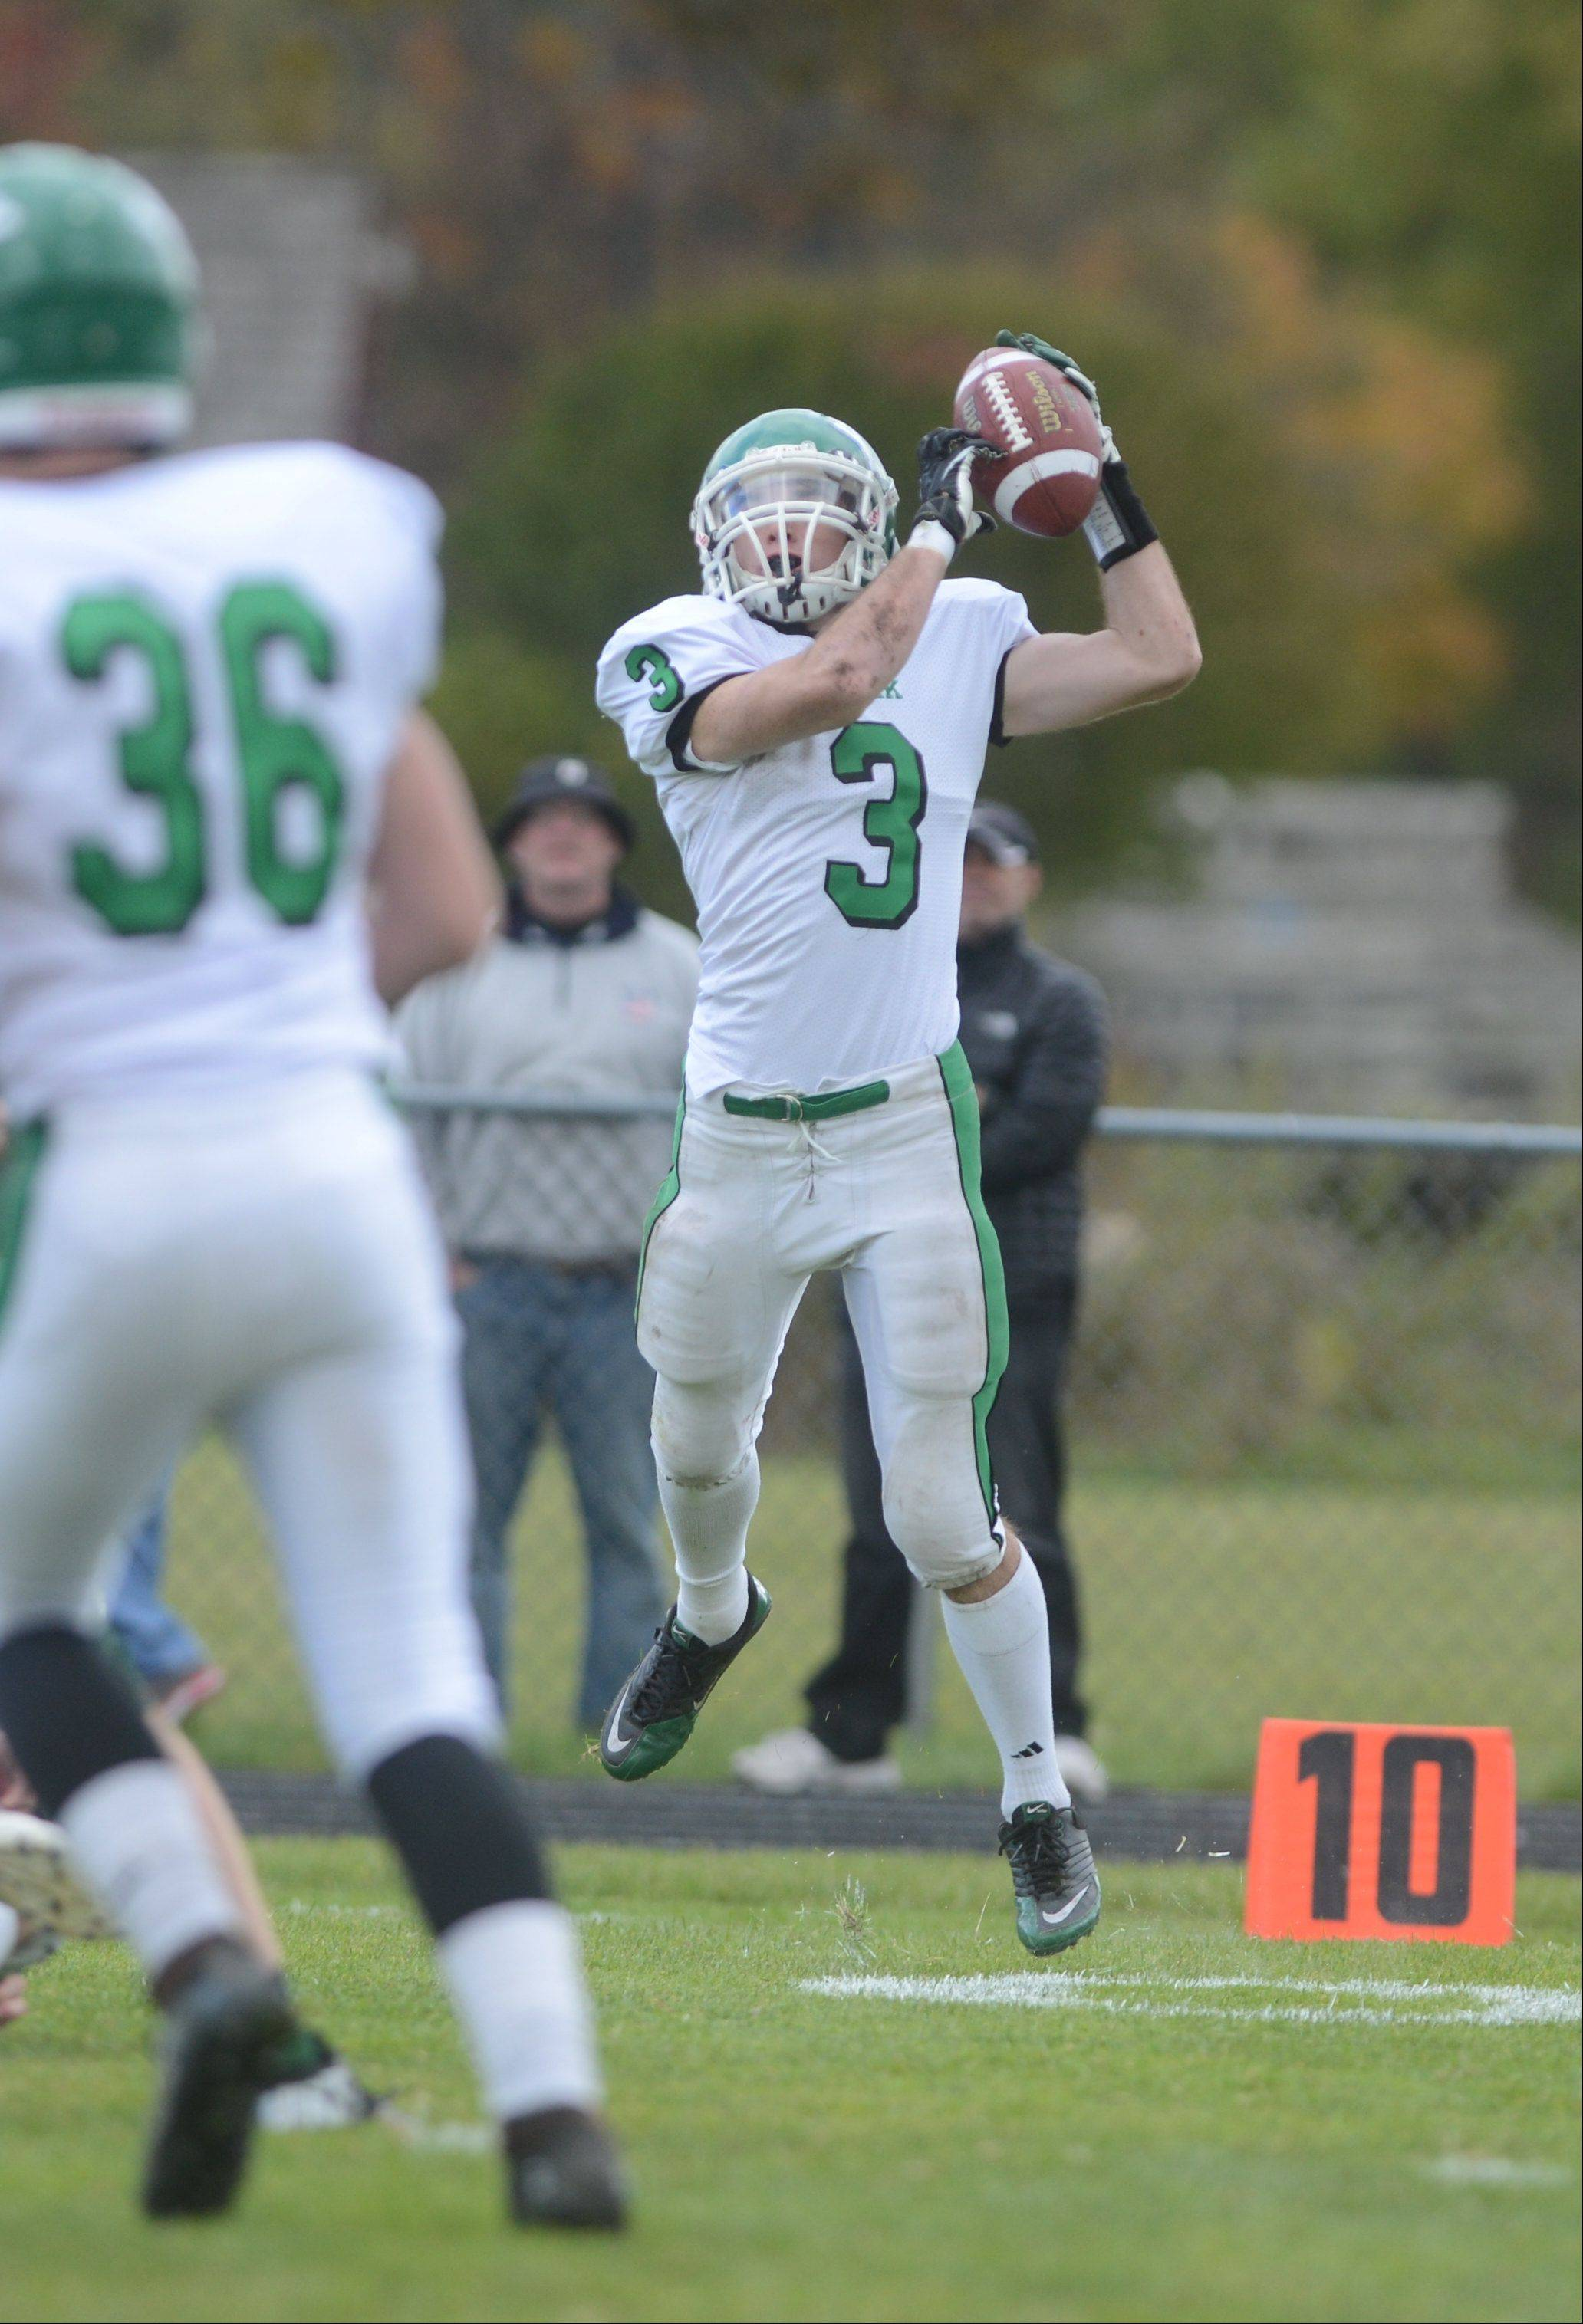 Week -9- Photos from the York at Glenbard West football game on Saturday, Oct. 26.